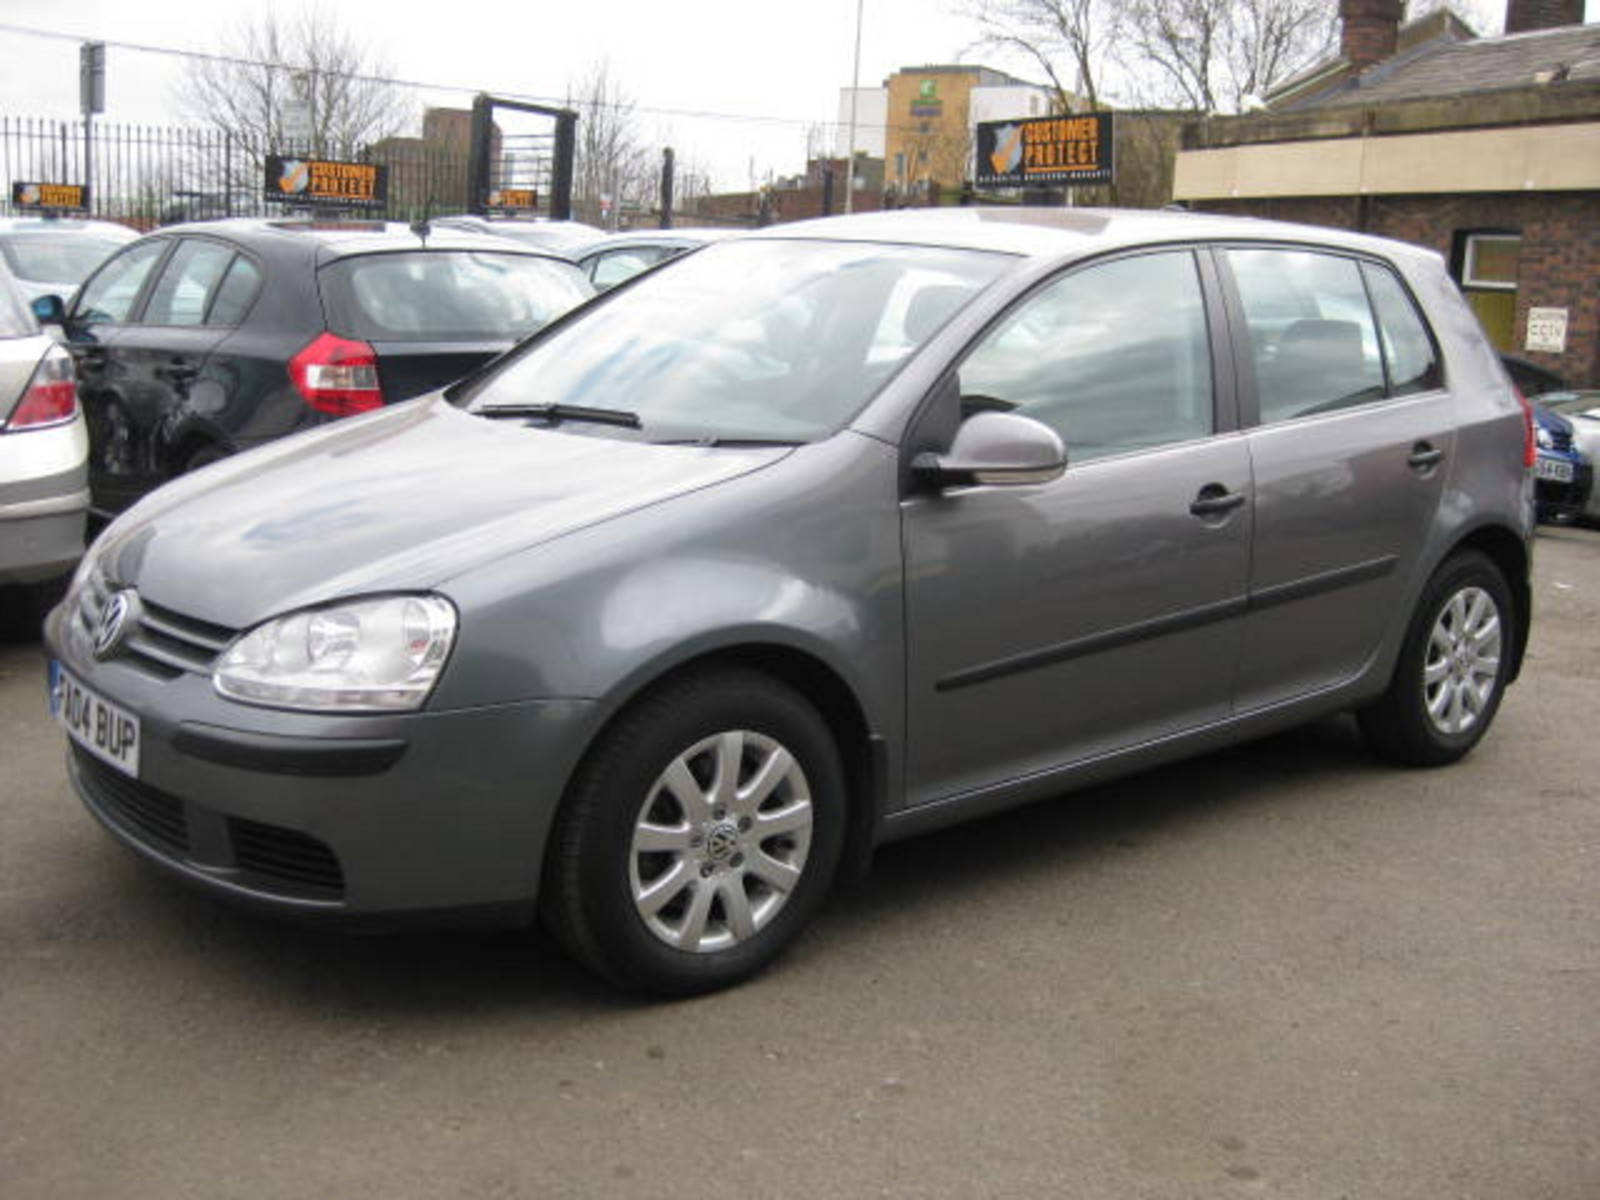 Volkswagen Golf 1.9 TDI SE Hatchback Diesel Grey at H & D Motors Watford